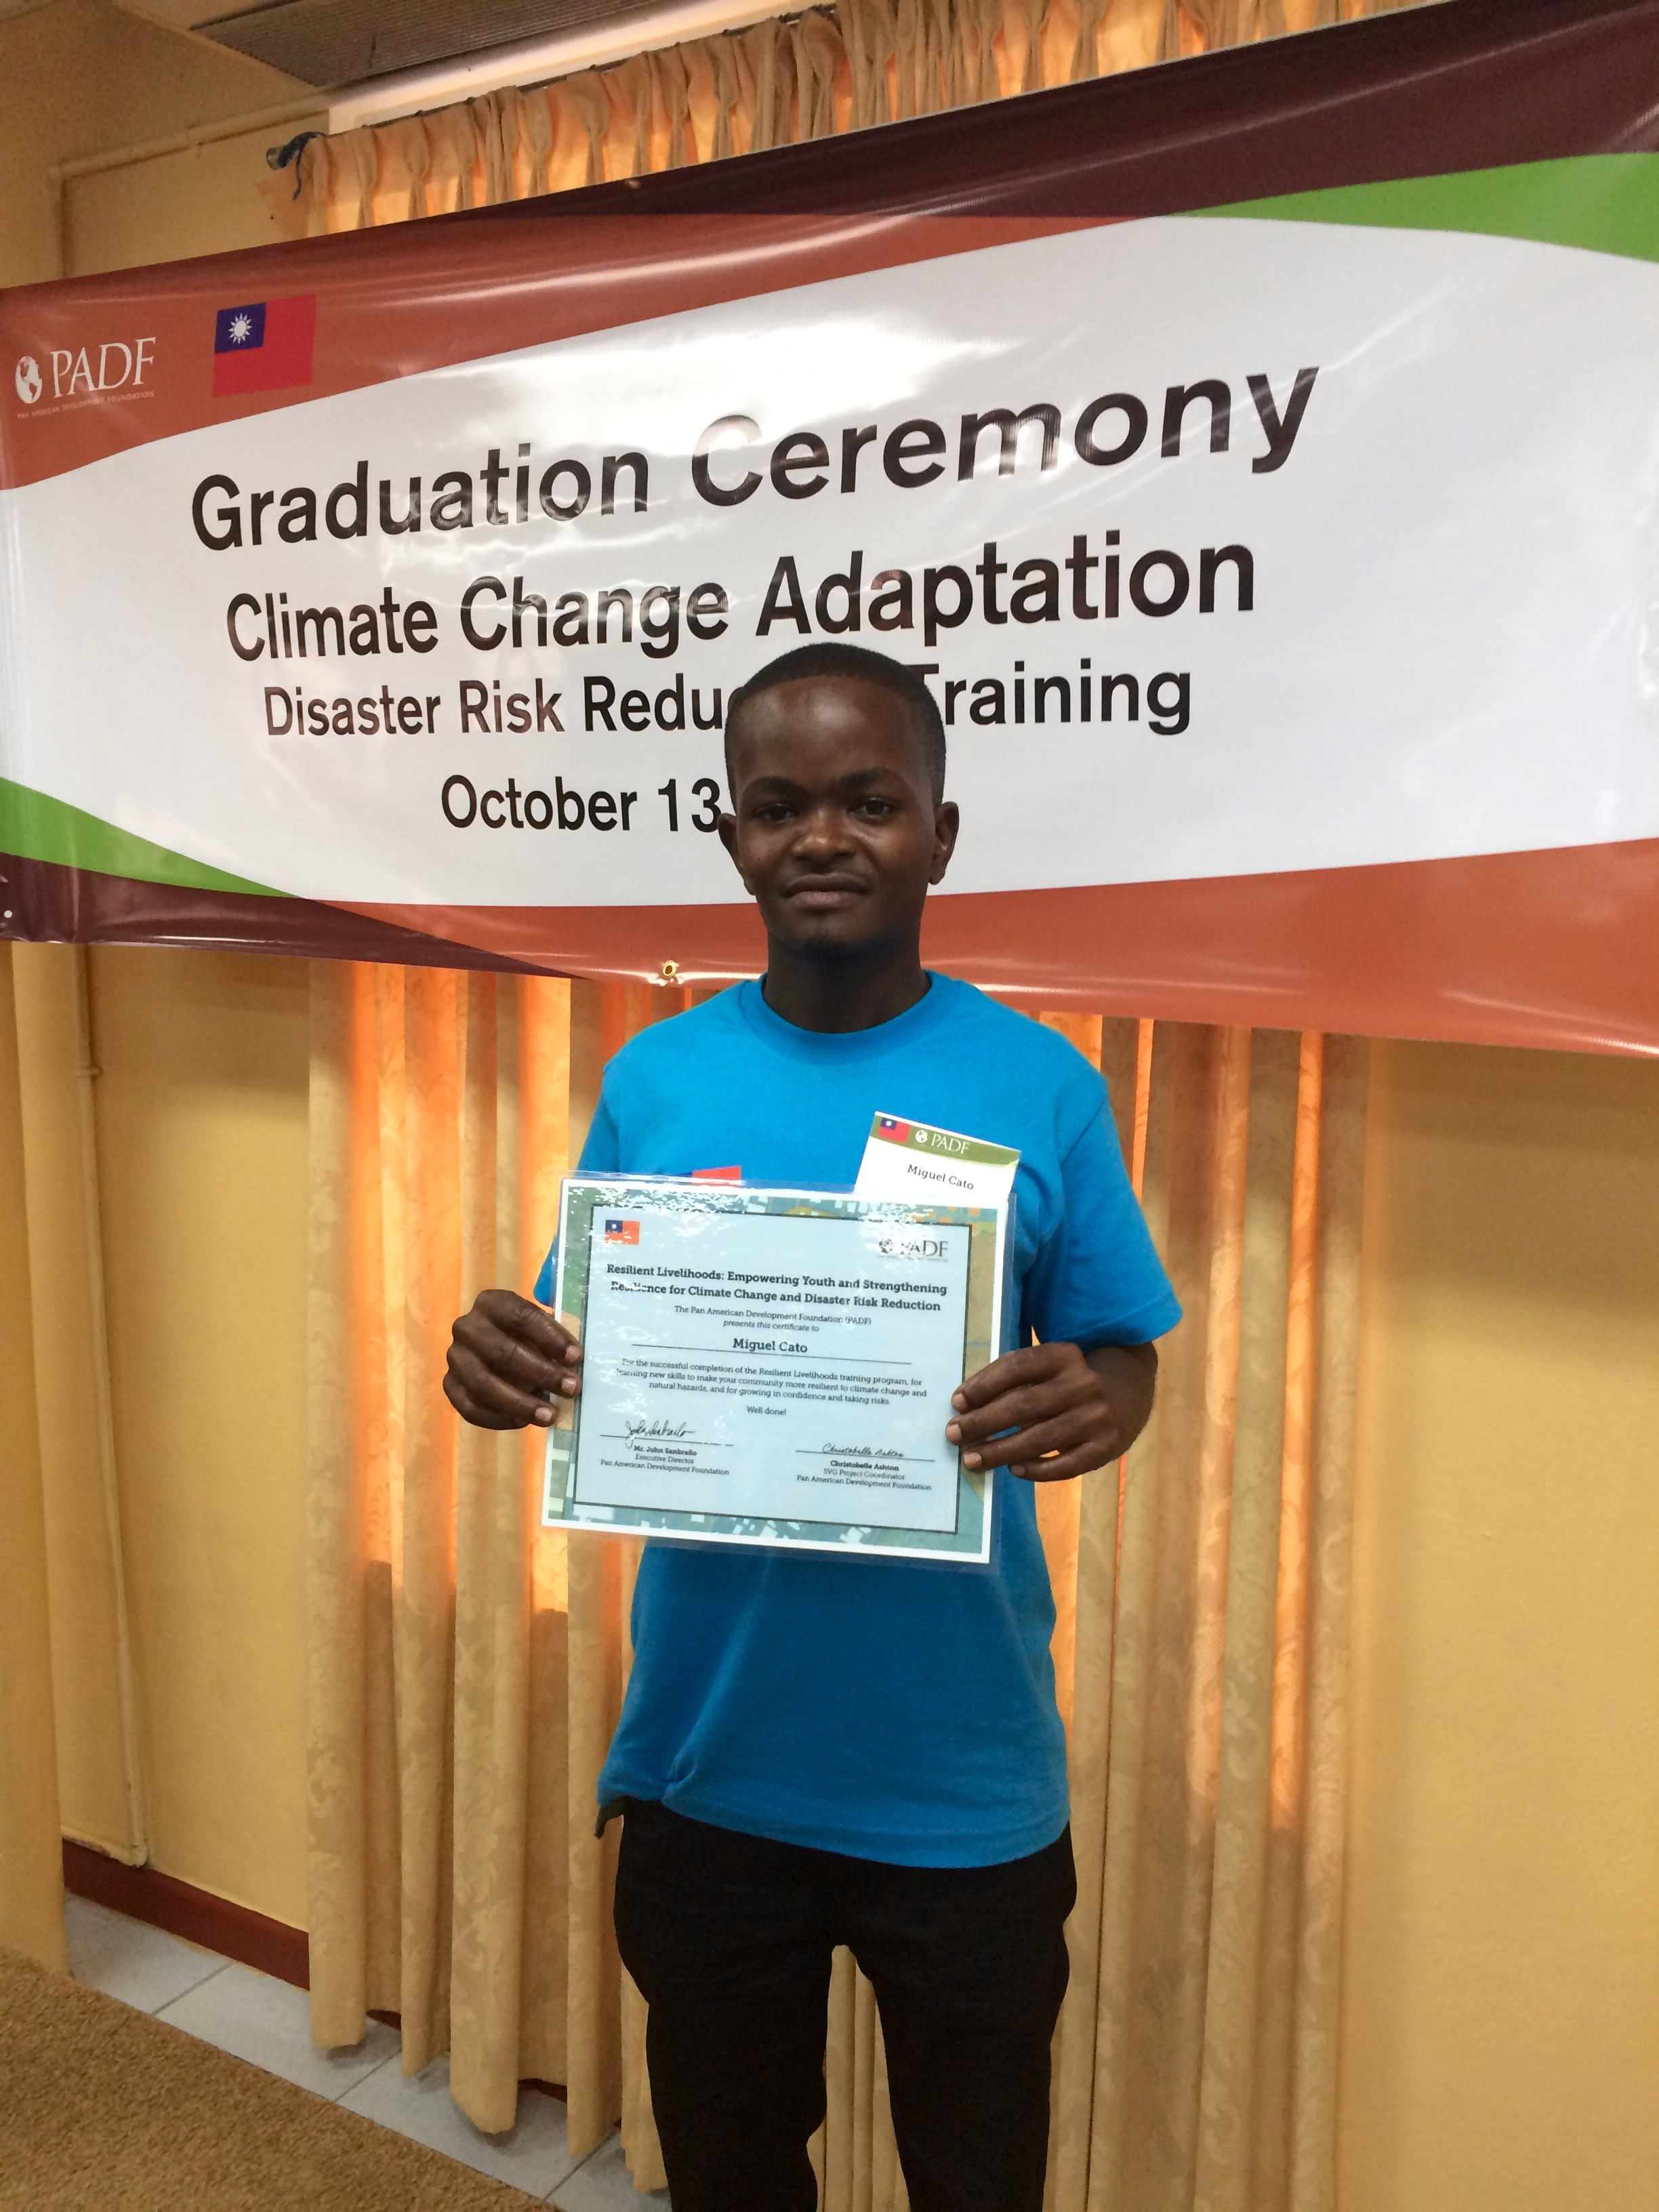 A graduate from the island of Bequia holds his certificate.